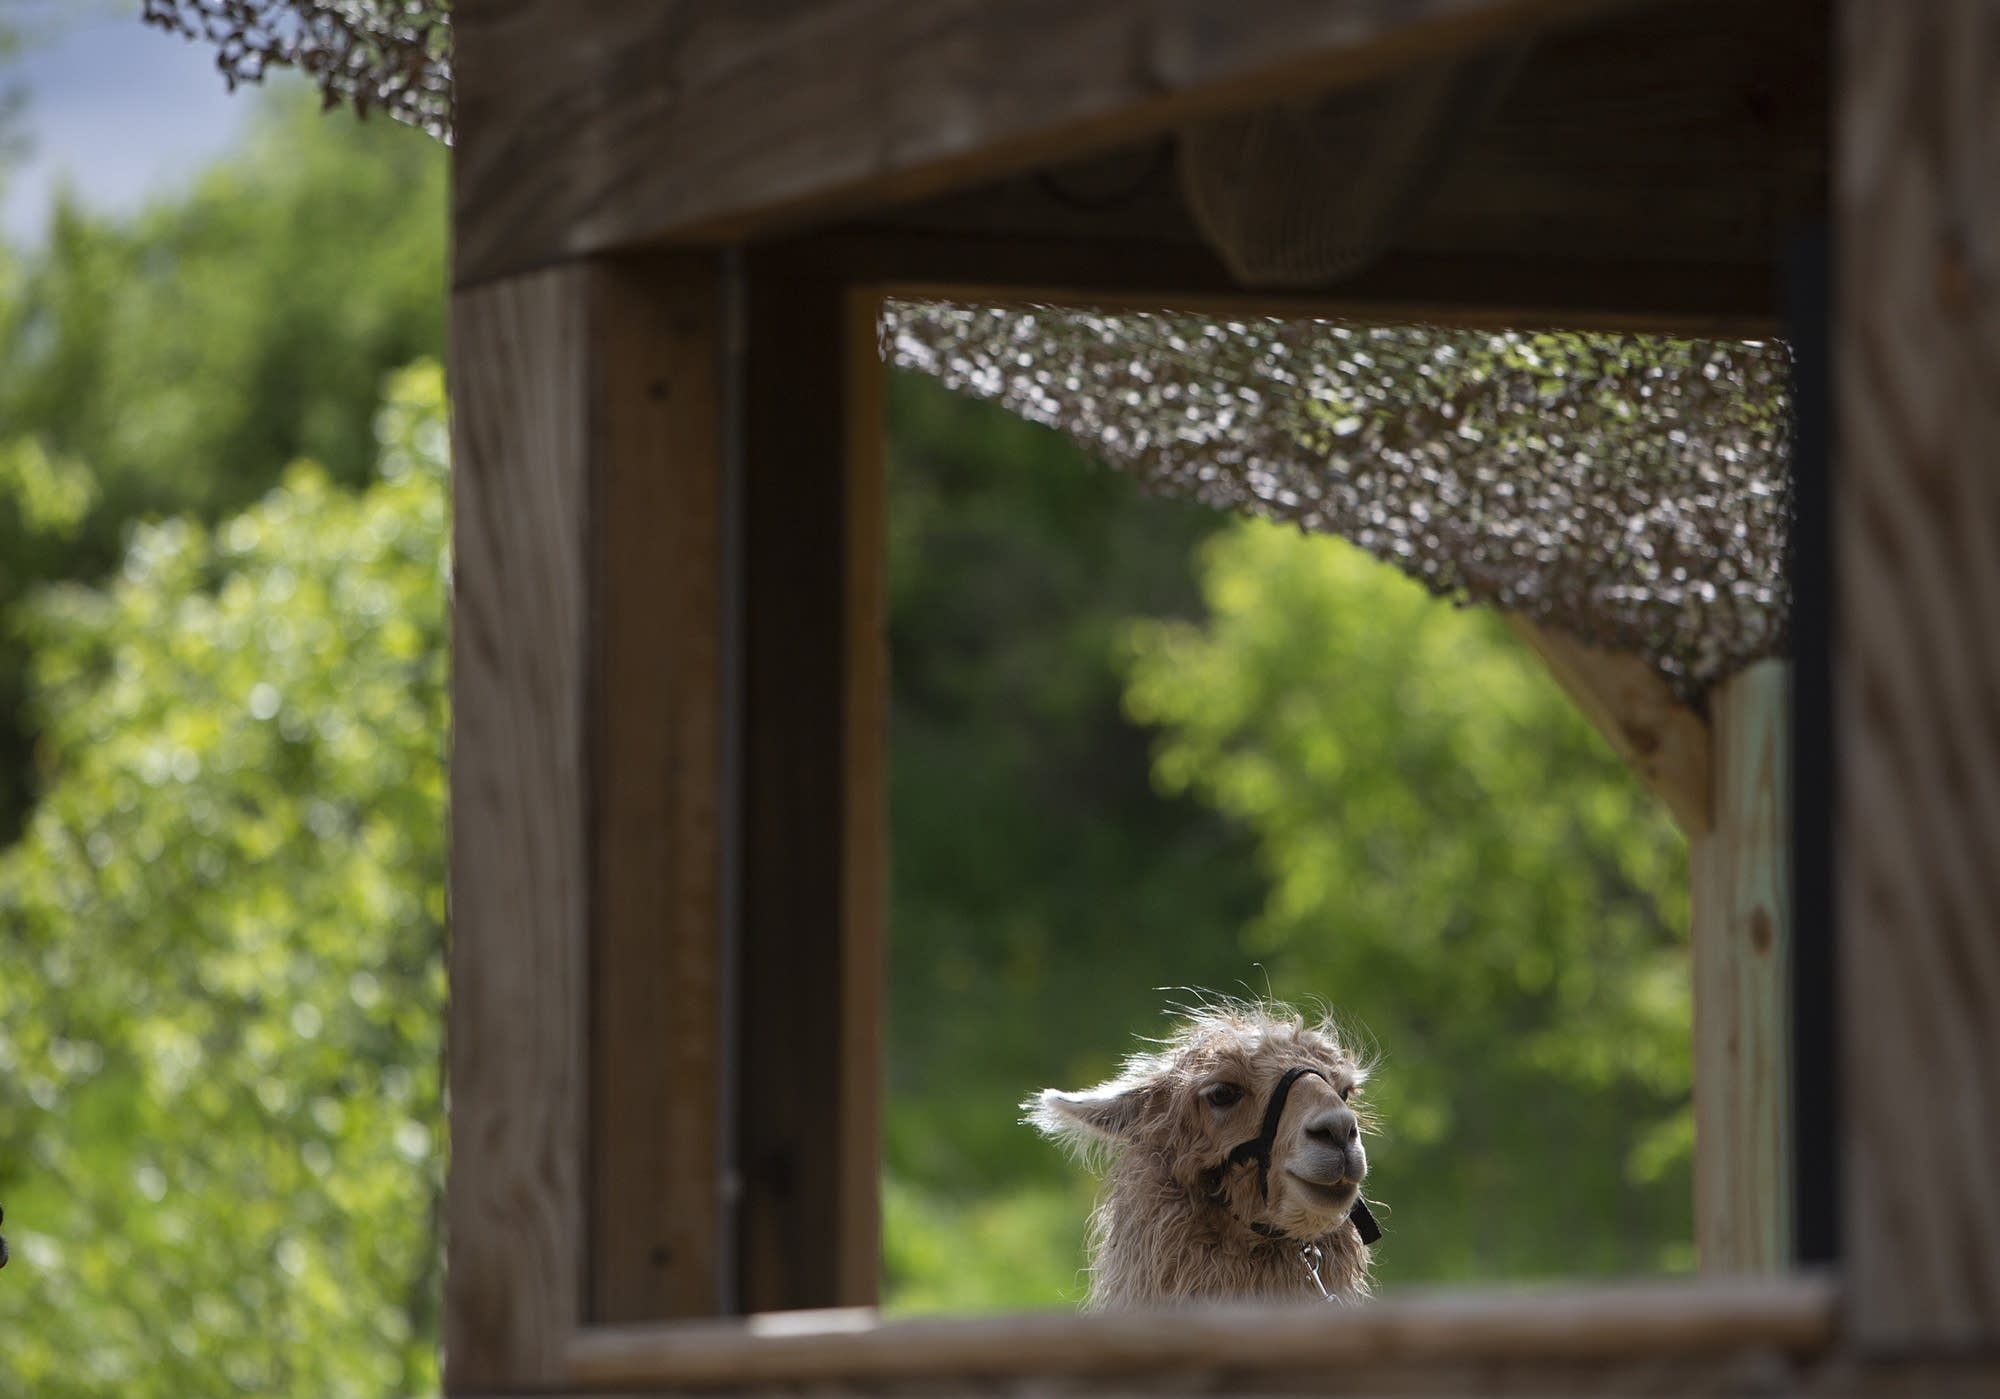 A llama peeks through a structure at the Minnesota Zoo.